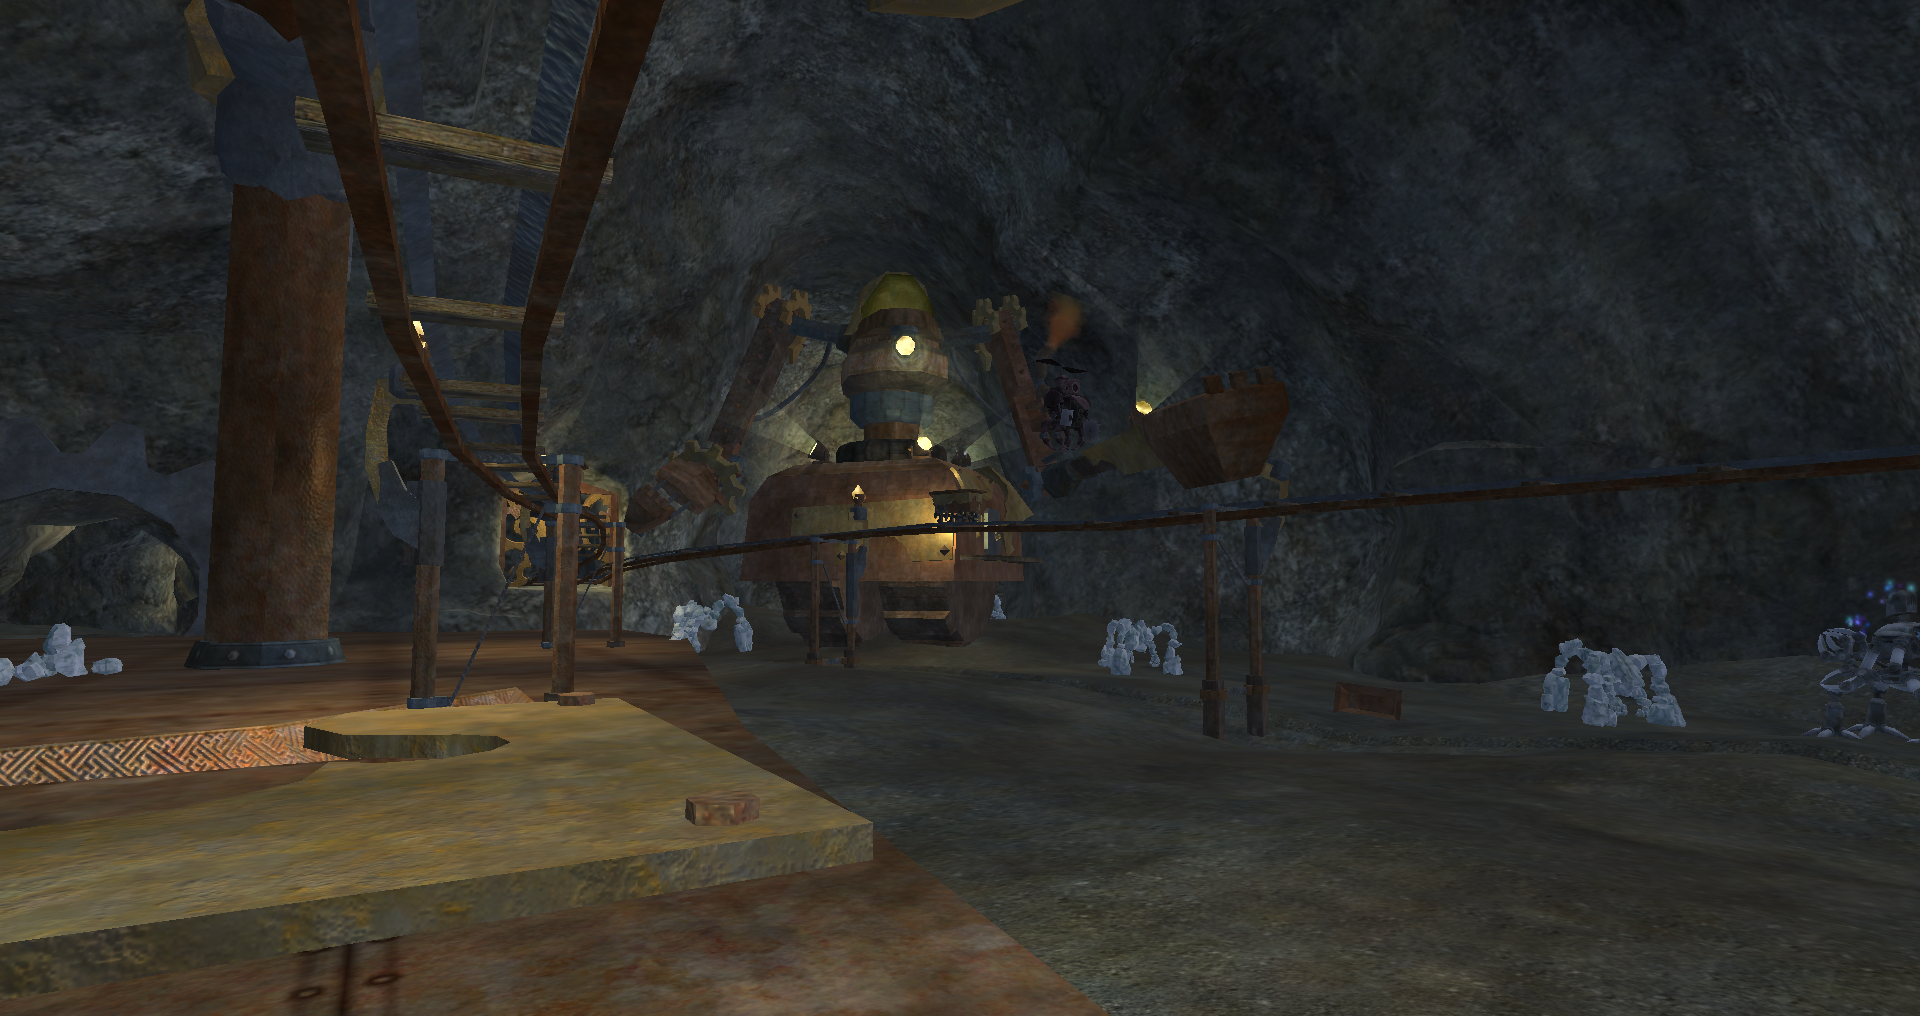 The Ore Extraction Site